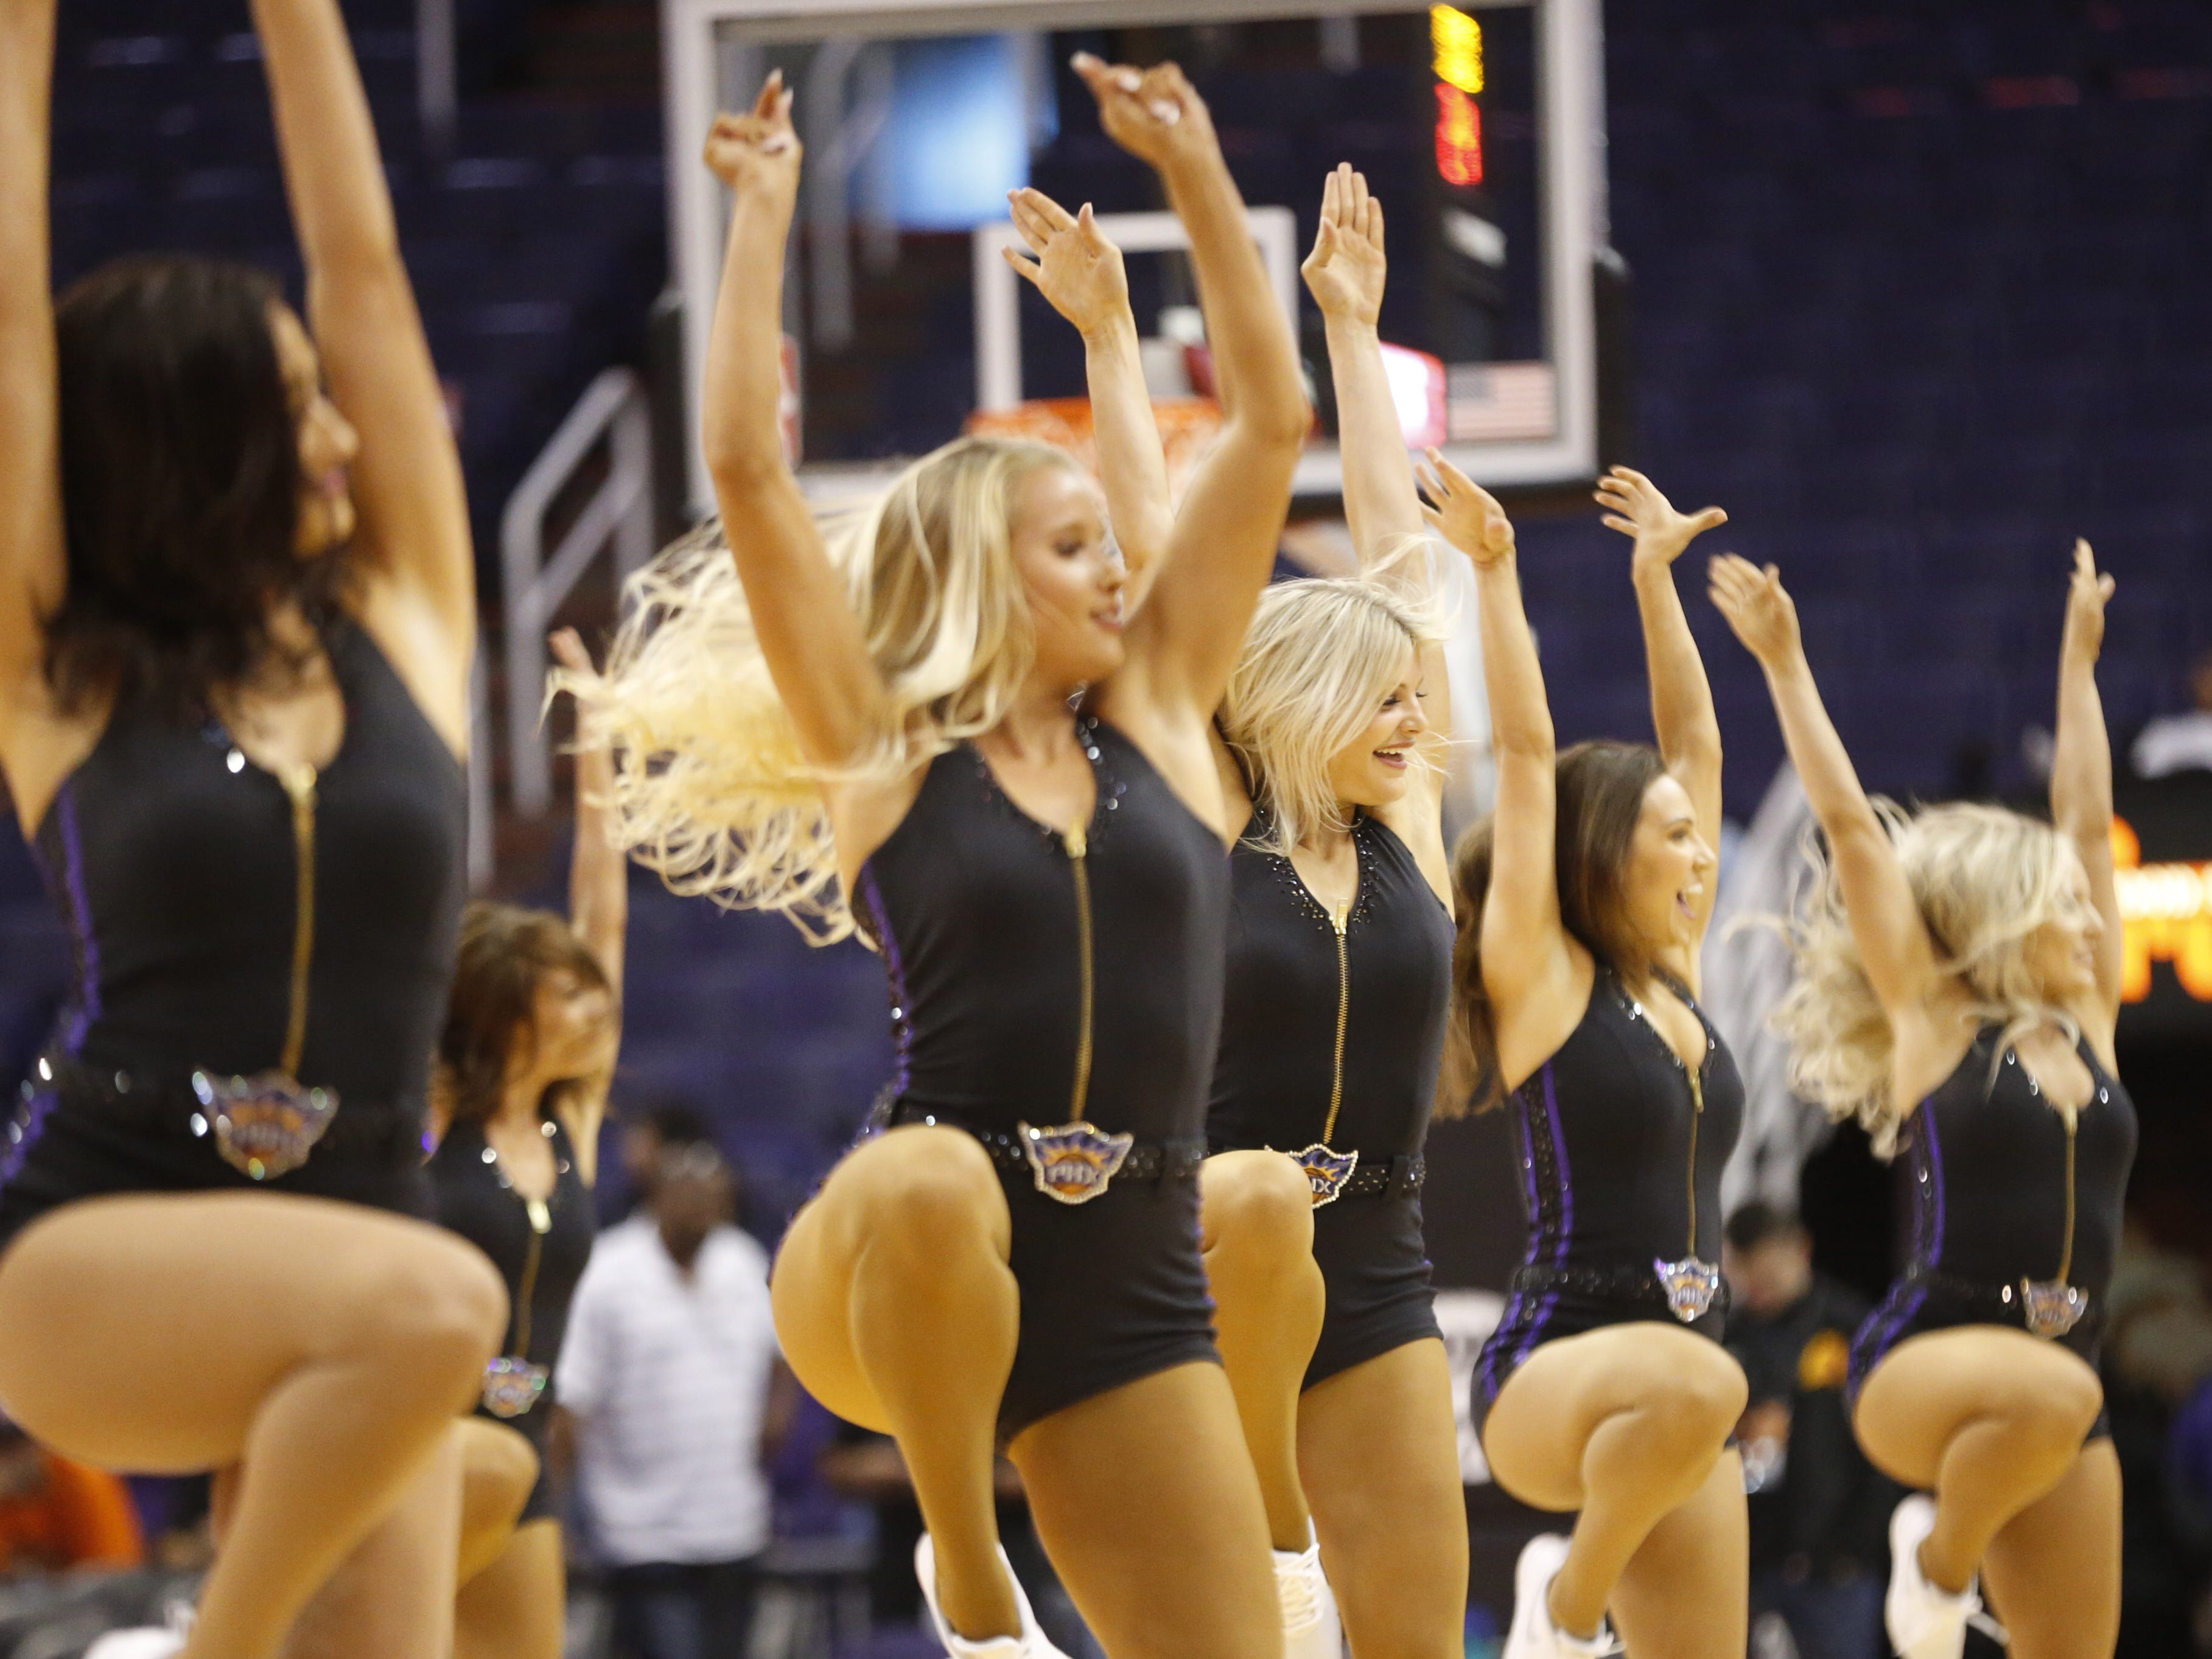 Suns dancers entertain fans during an Open Practice at Talking Stick Resort Arena in Phoenix, Ariz. on Sept. 29, 2018.